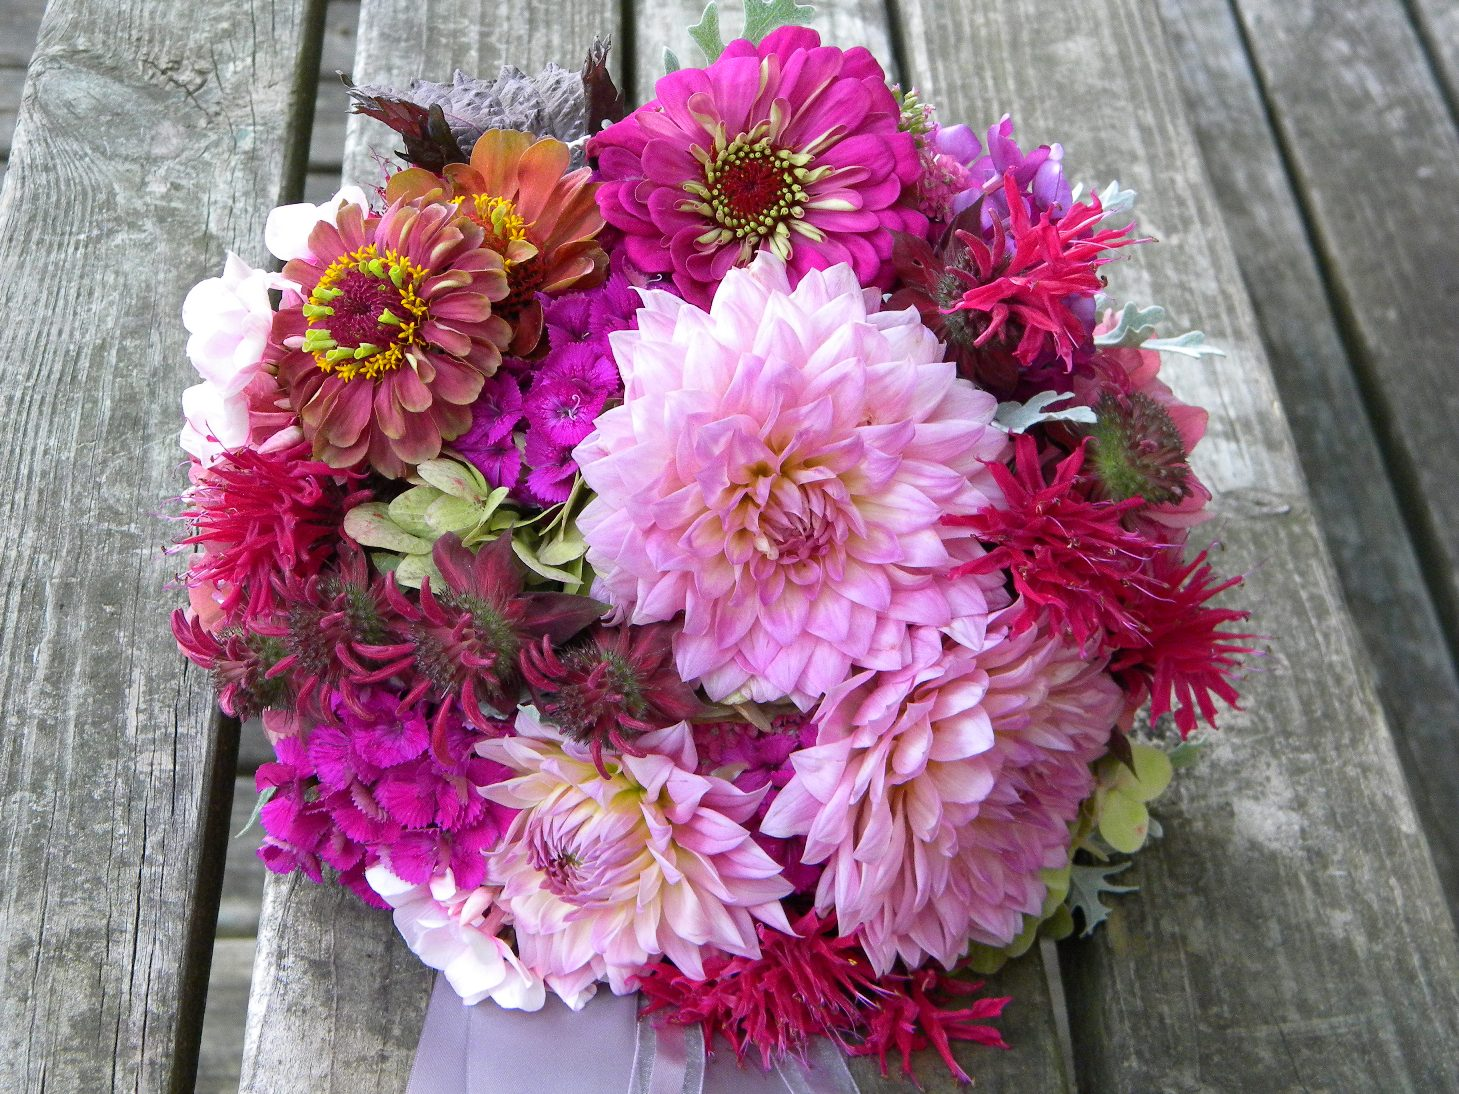 June Blooms From The Garden Included Lots Of Shades Pinks Reds And Wines Lavender Pink Dahlias Pale Summer Phlox Queen Red Lime Zinnias Wine